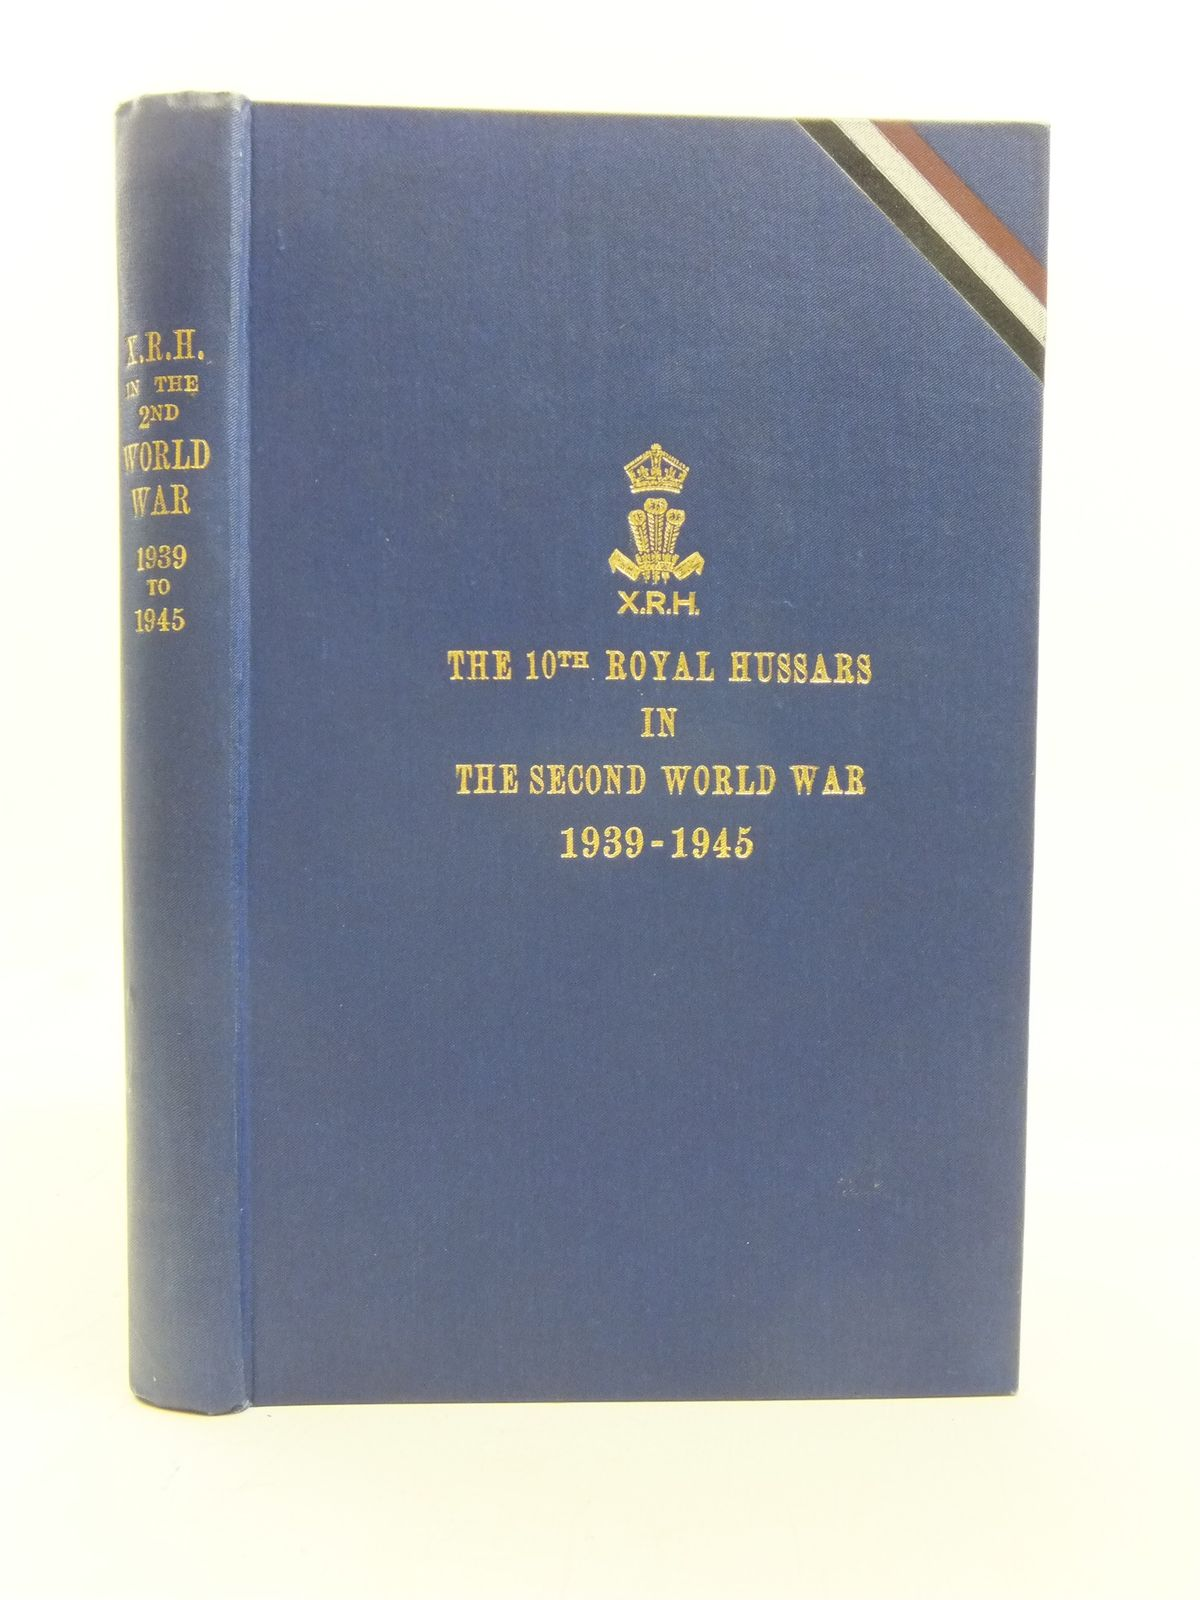 Photo of THE 10TH ROYAL HUSSARS IN THE SECOND WORLD WAR 1939-1945 written by Dawnay, D published by Gale & Polden, Ltd. (STOCK CODE: 1208084)  for sale by Stella & Rose's Books